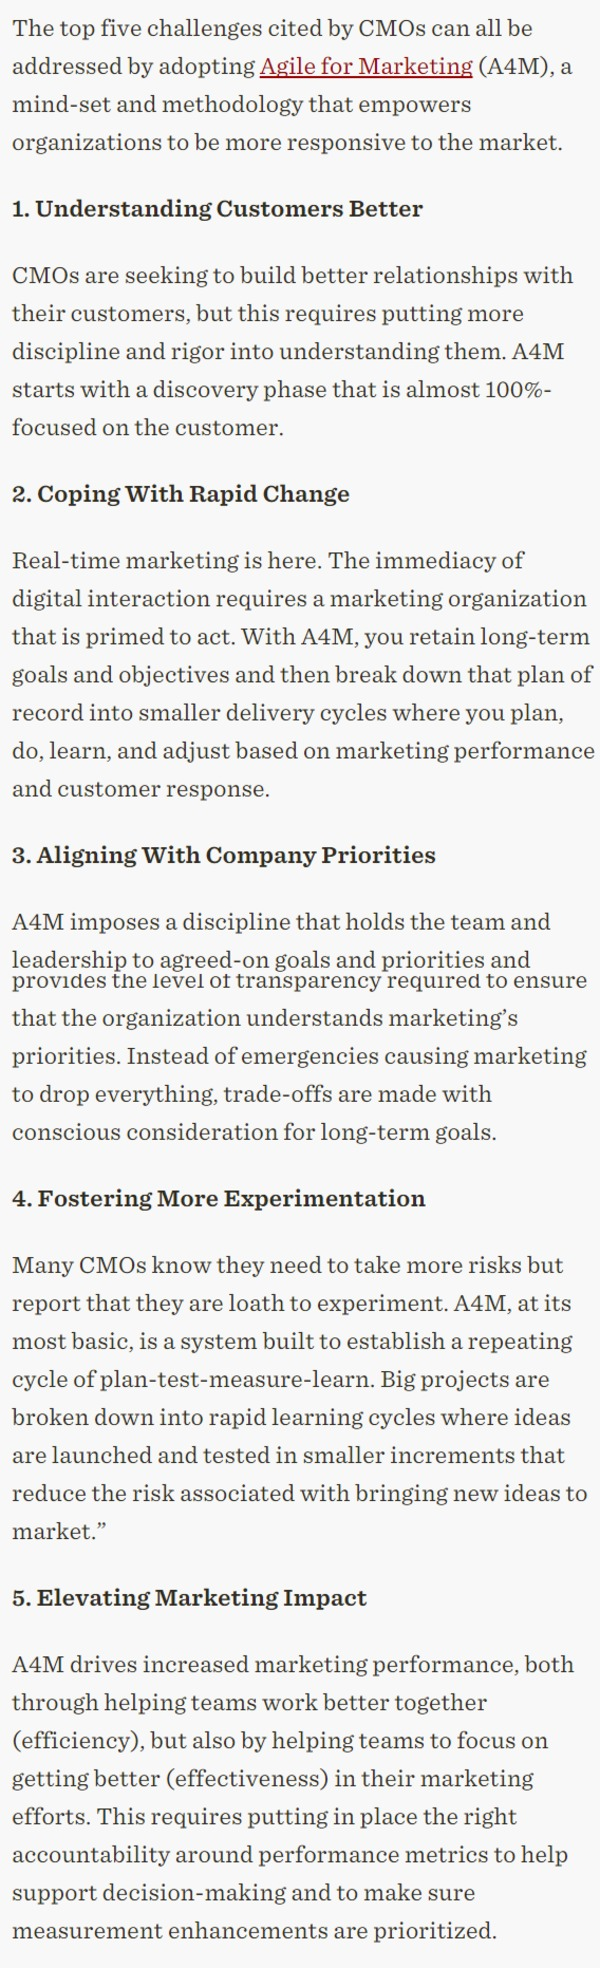 How Agile for Marketing Can Work for You - CMO.com | The Marketing Technology Alert | Scoop.it